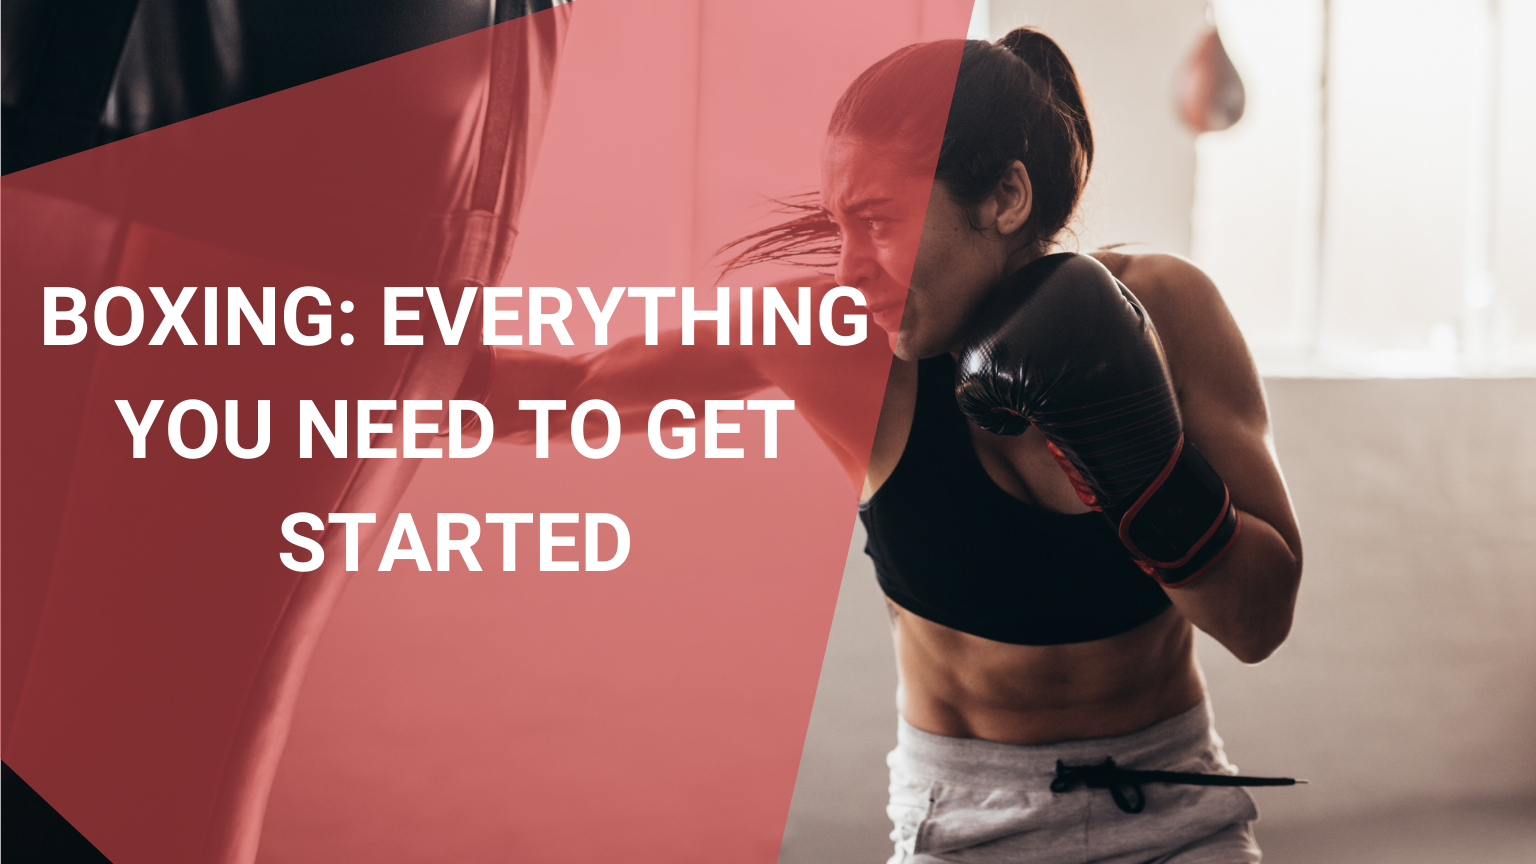 Boxing: Everything You Need to Get Started